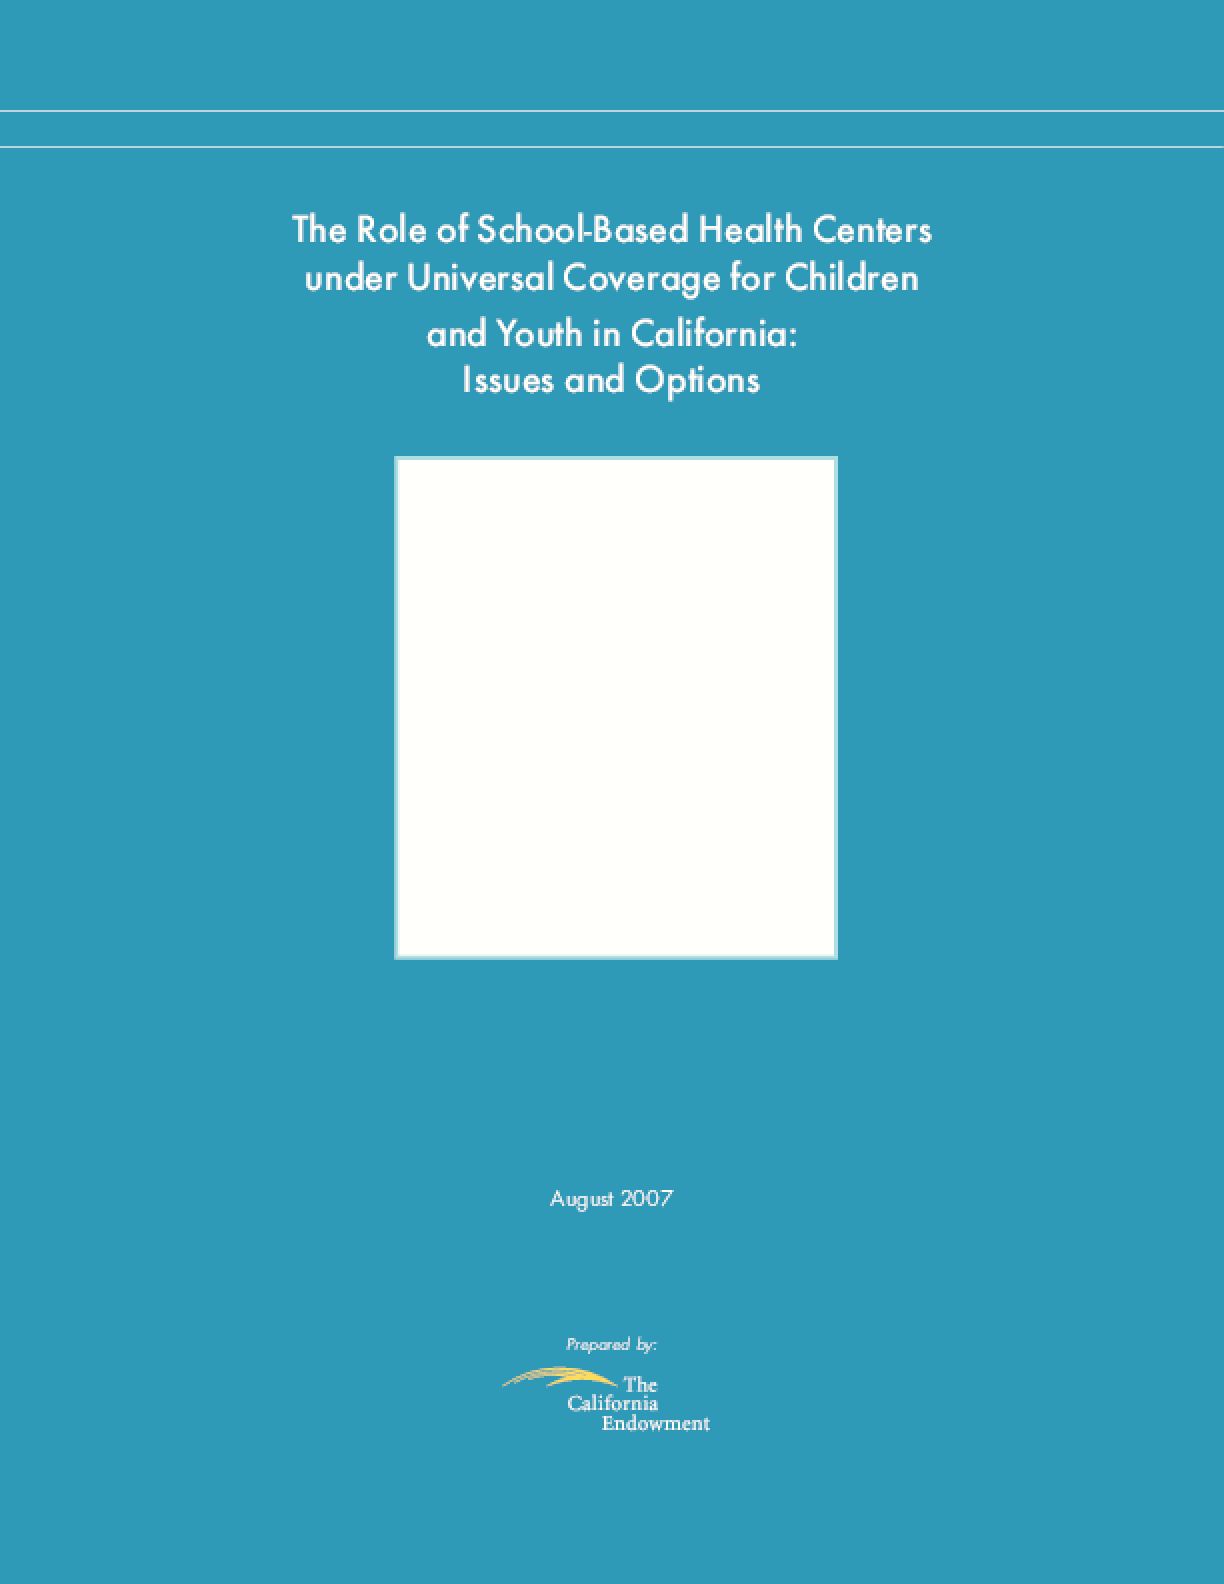 Role of School-Based Health Centers Under Universal Coverage for Children and Youth in California: Issues and Options